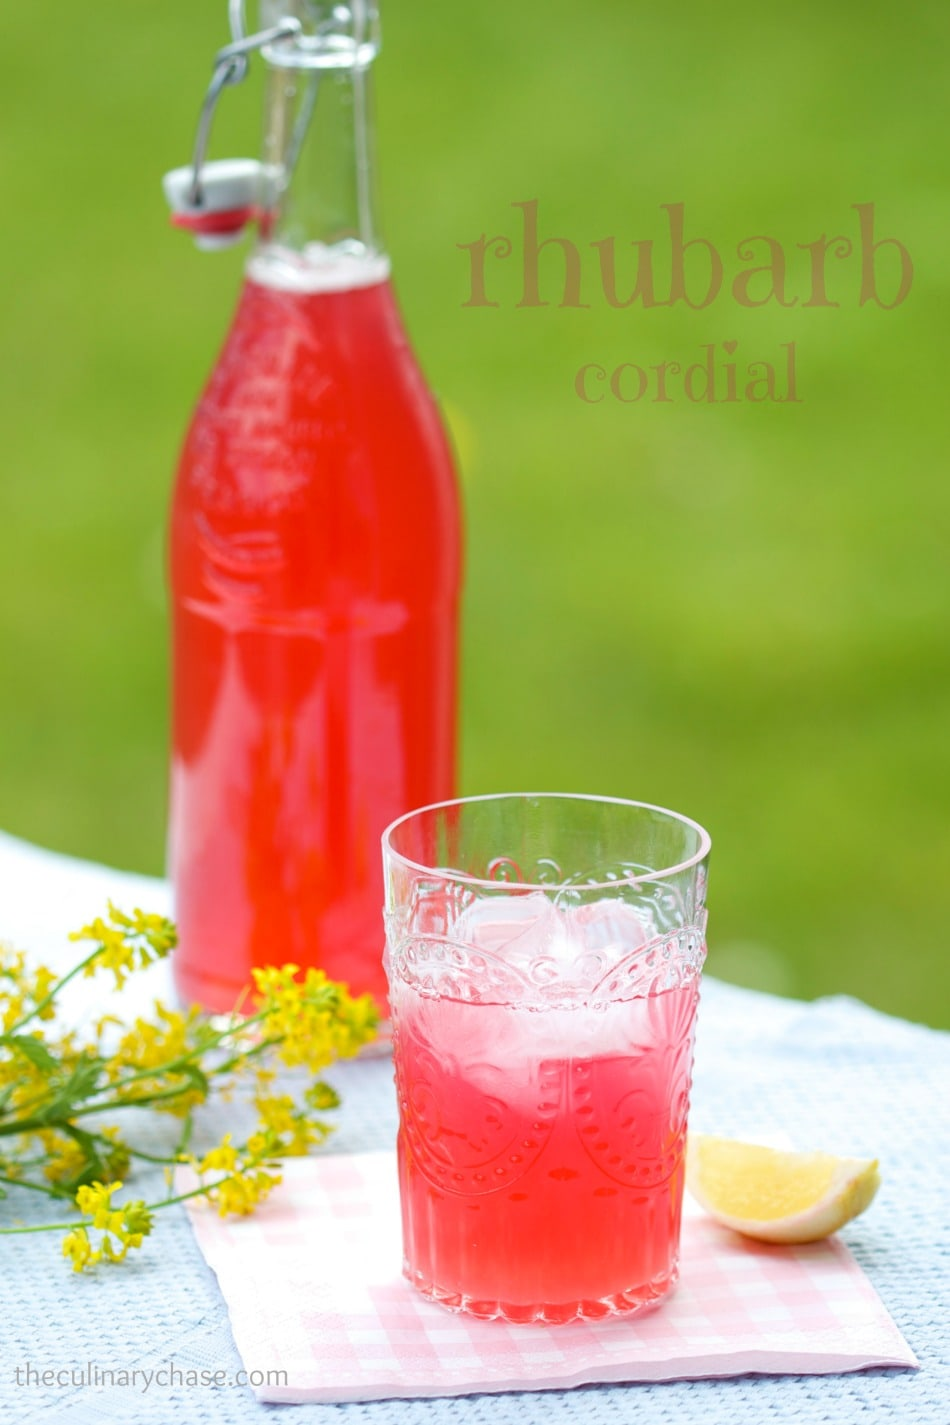 rhubarb cordial the culinary chase. Black Bedroom Furniture Sets. Home Design Ideas